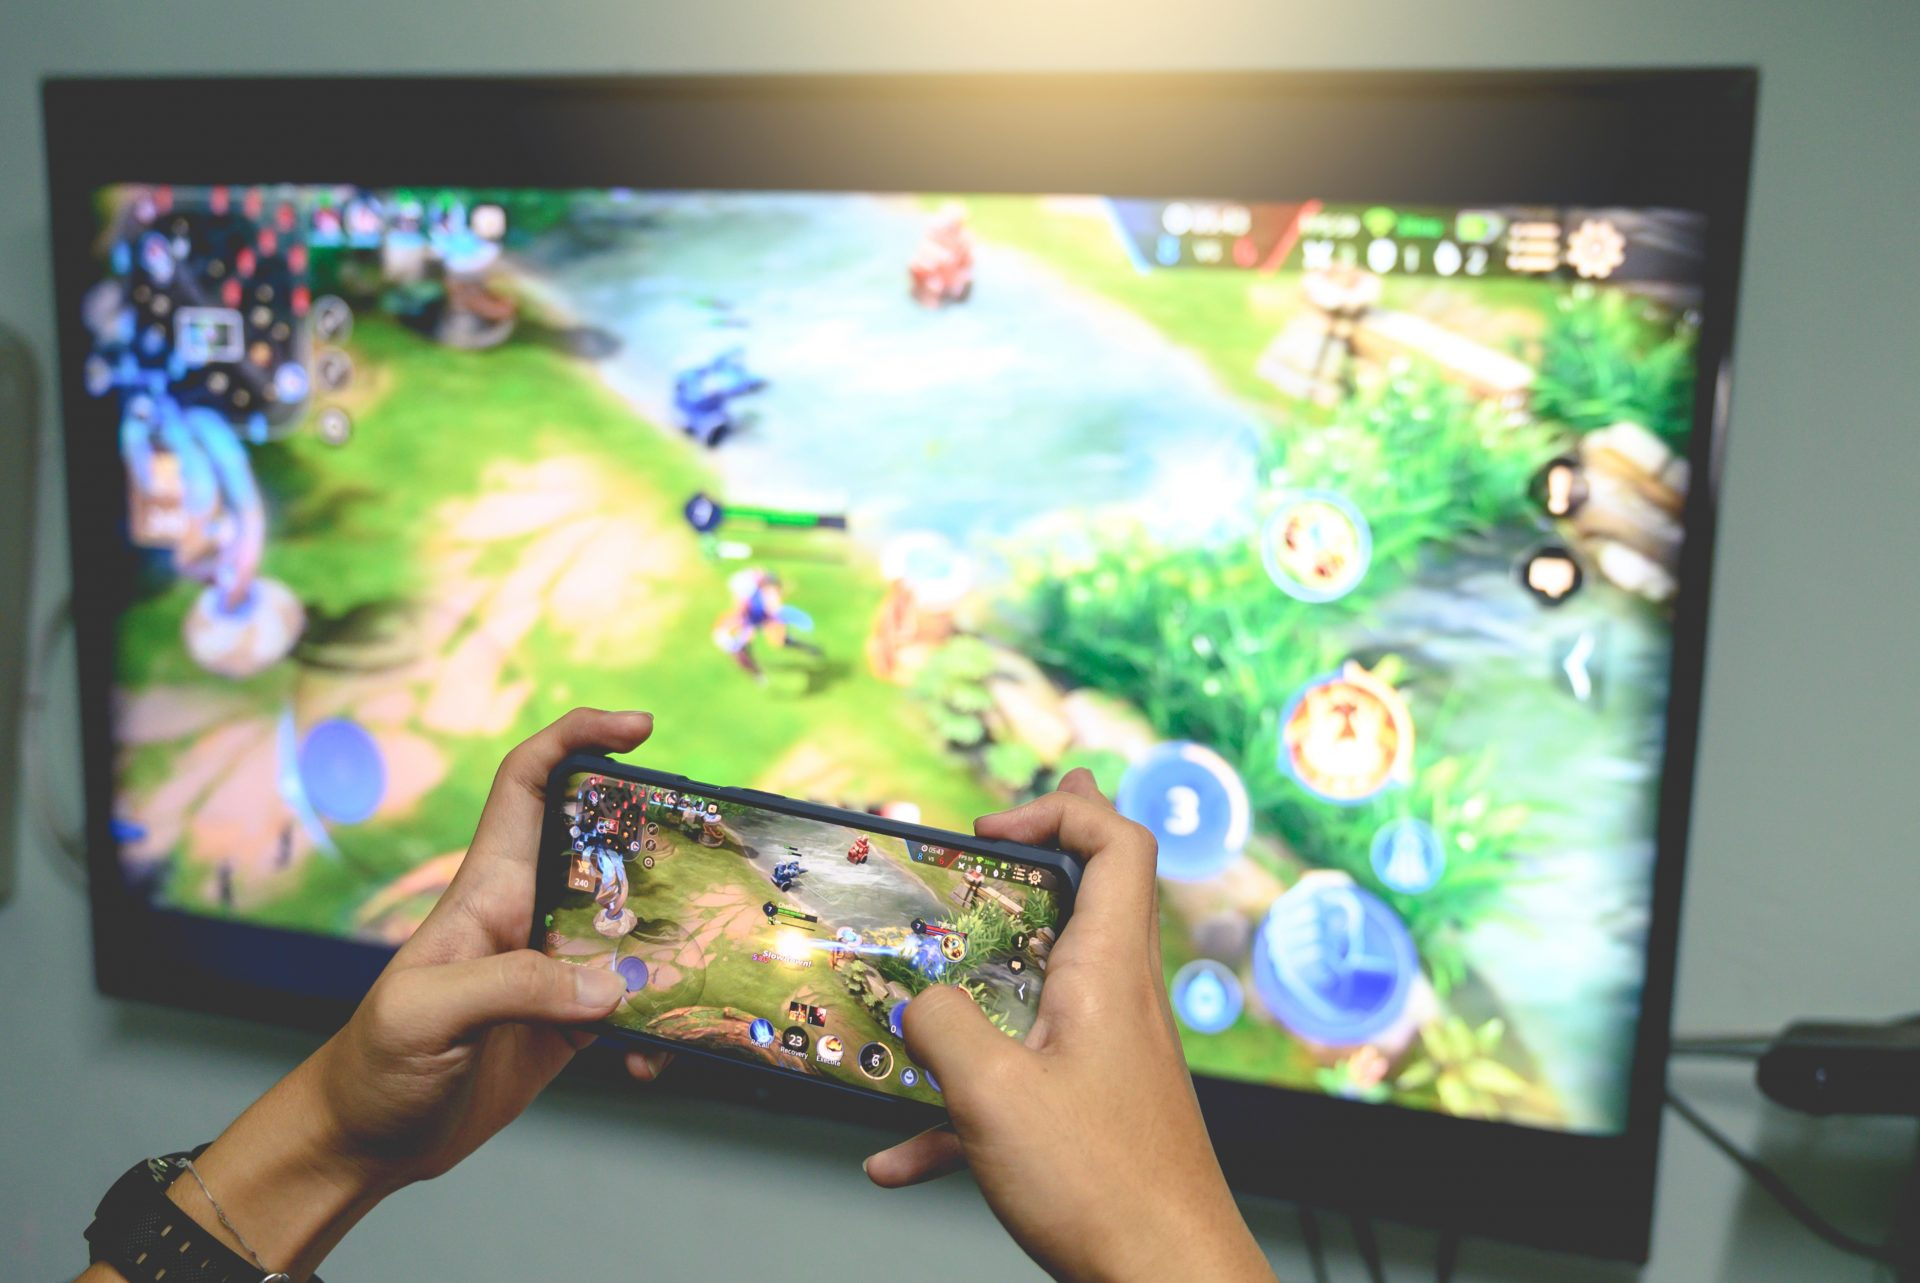 Gamer casting mobile game to TV